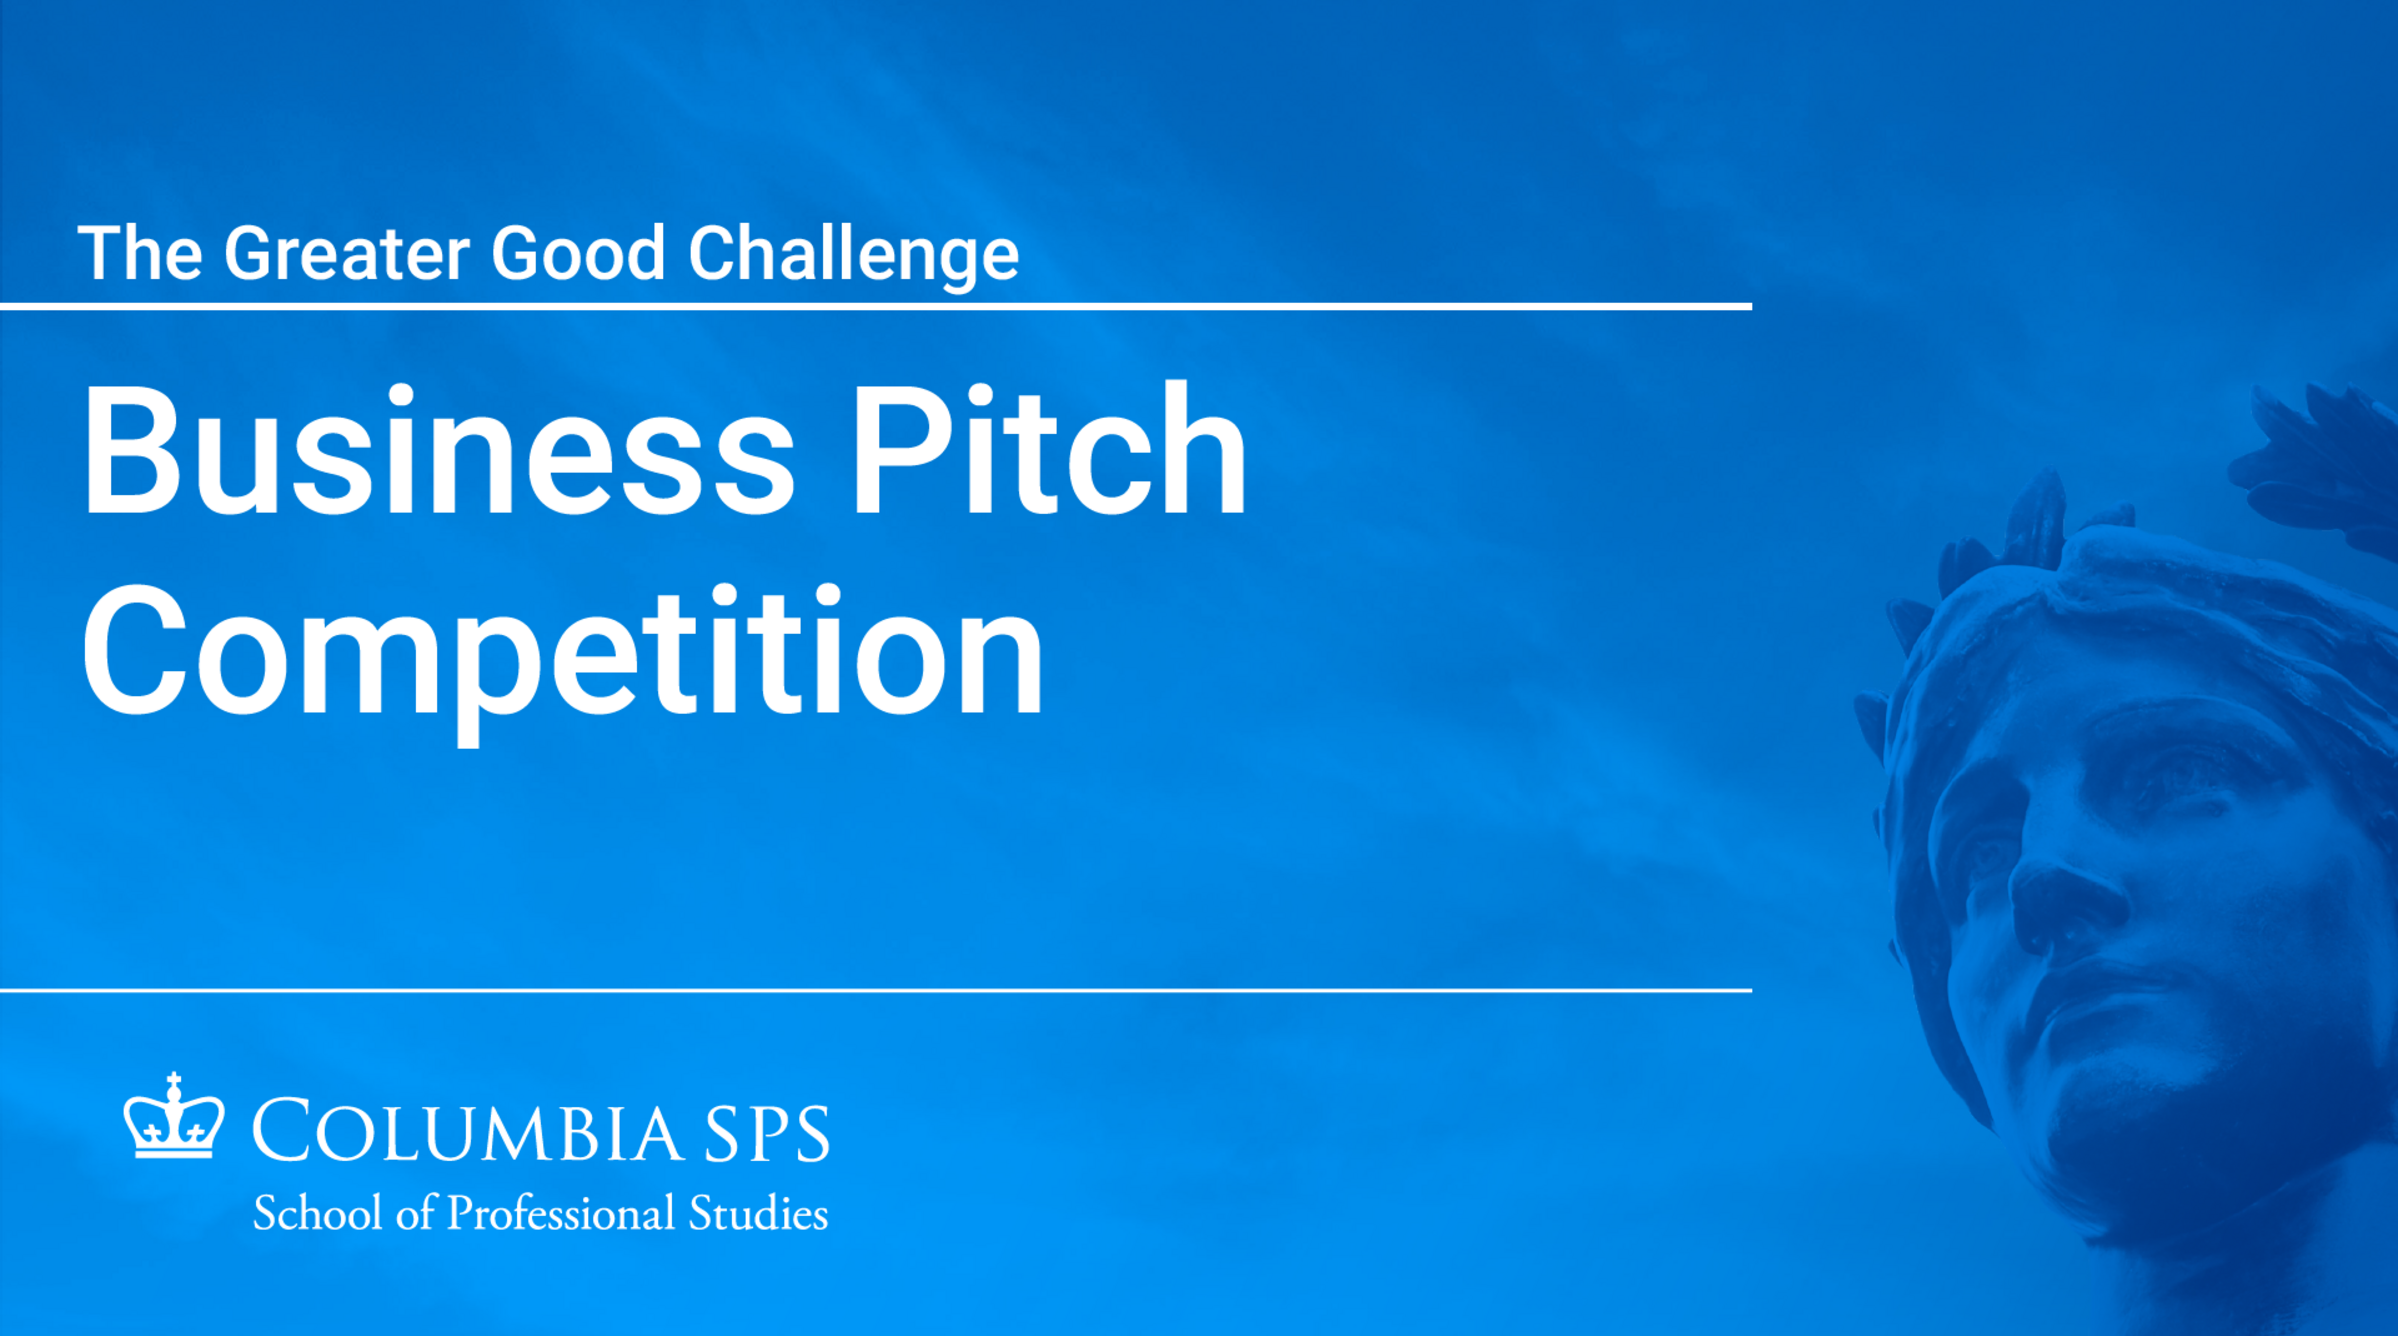 A cover image of a video introducing the Greater Good Challenge Business Pitch Competition.